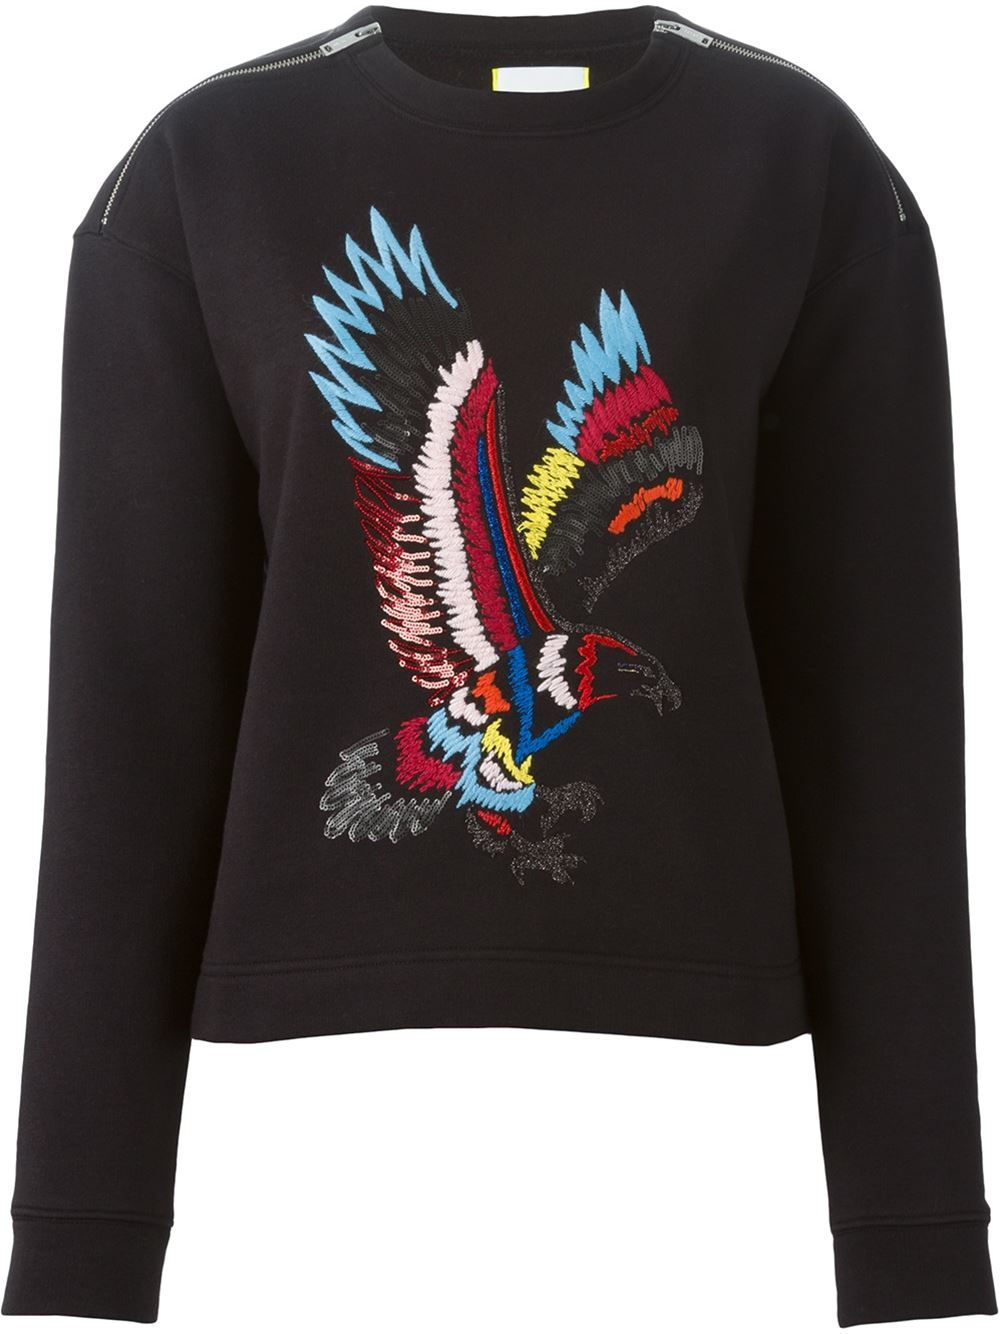 Embroidered Sweatshirts, Black Eagle, Boutiques, Tees, Embroidered T Shirts,  T Shirts, Embroidered Hoodies, Clothing Boutiques, Boutique